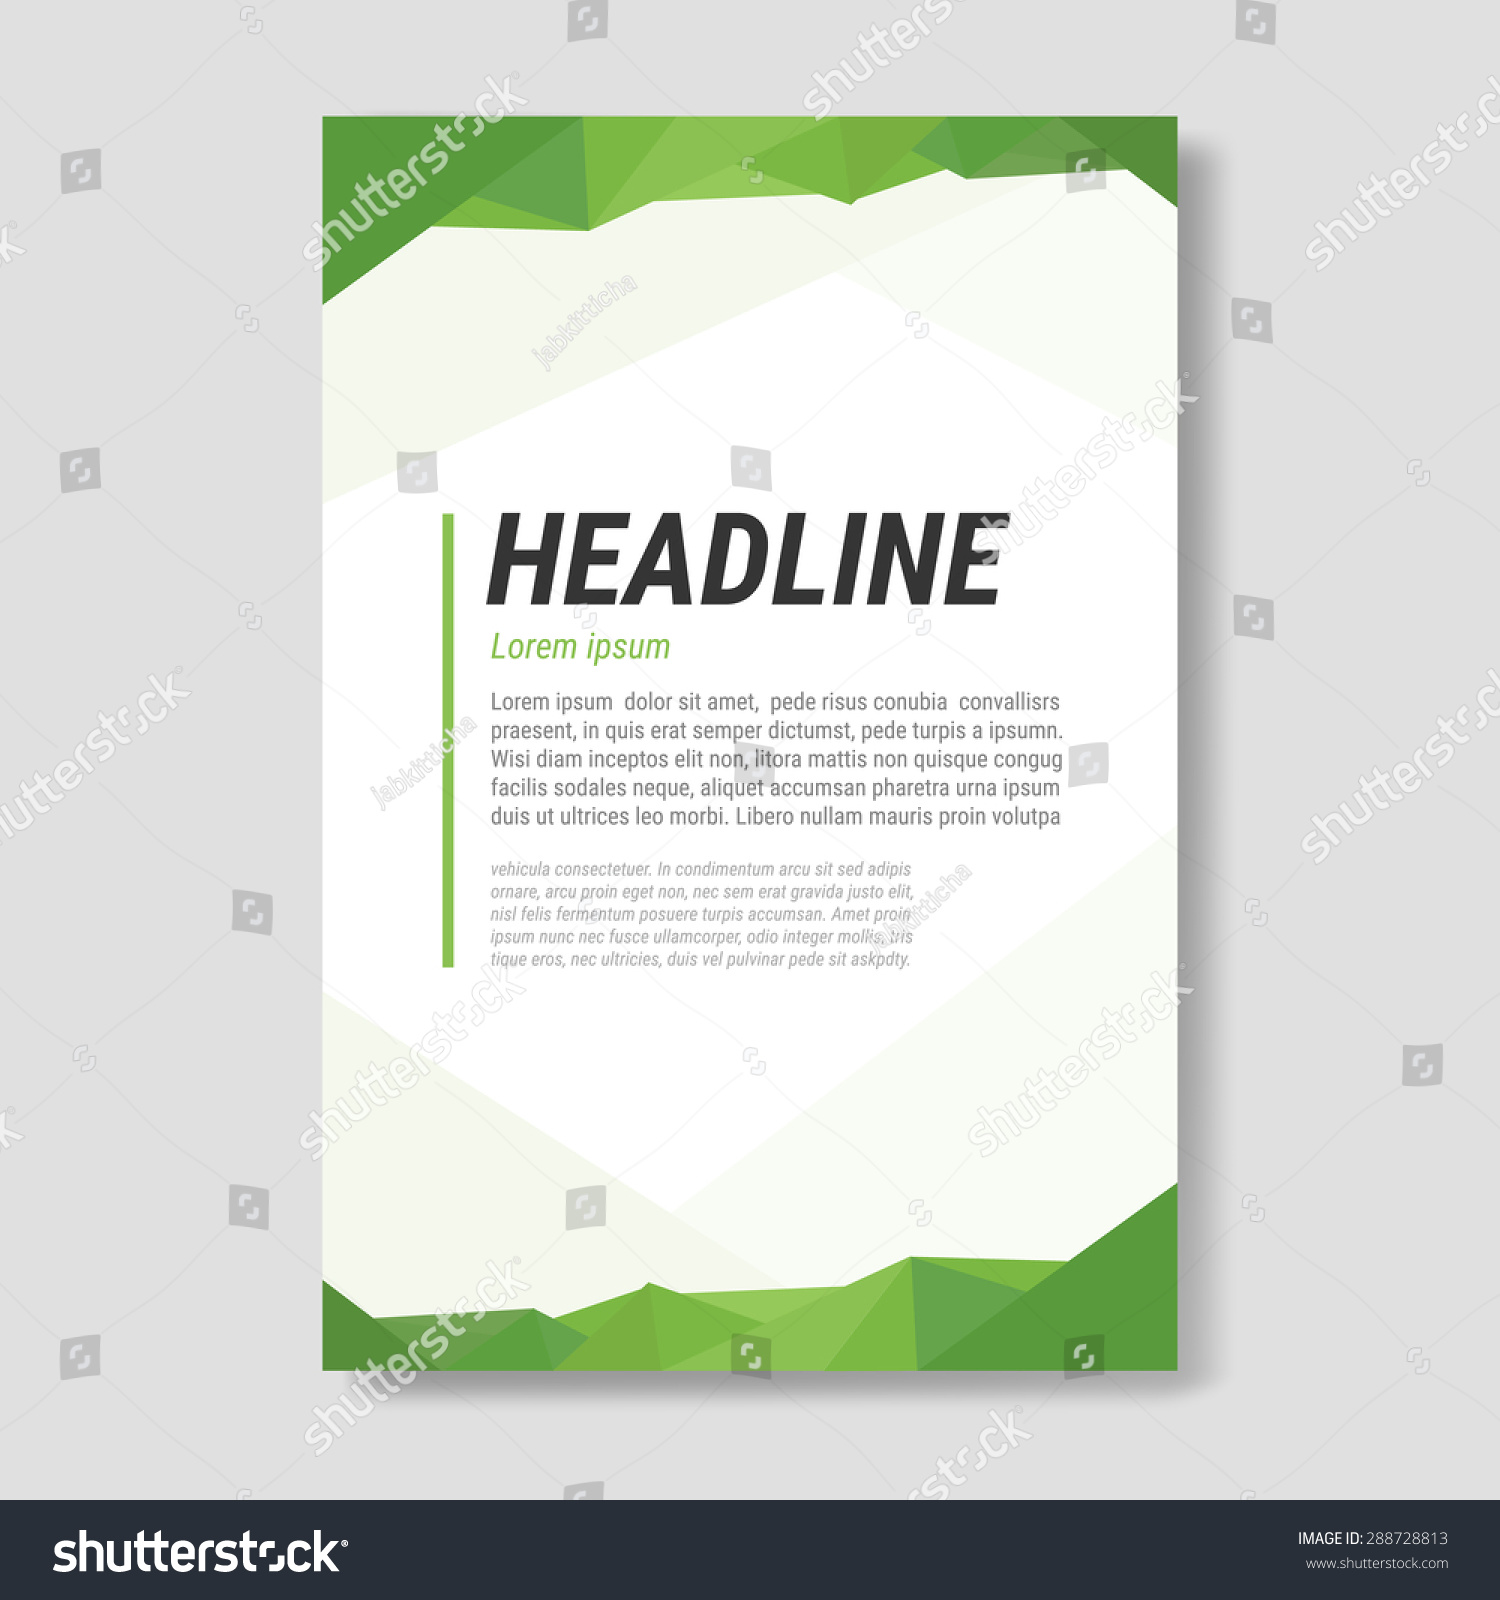 Graphic design document template business visual stock vector graphic design document template for business visual identity modern low poly style pronofoot35fo Choice Image